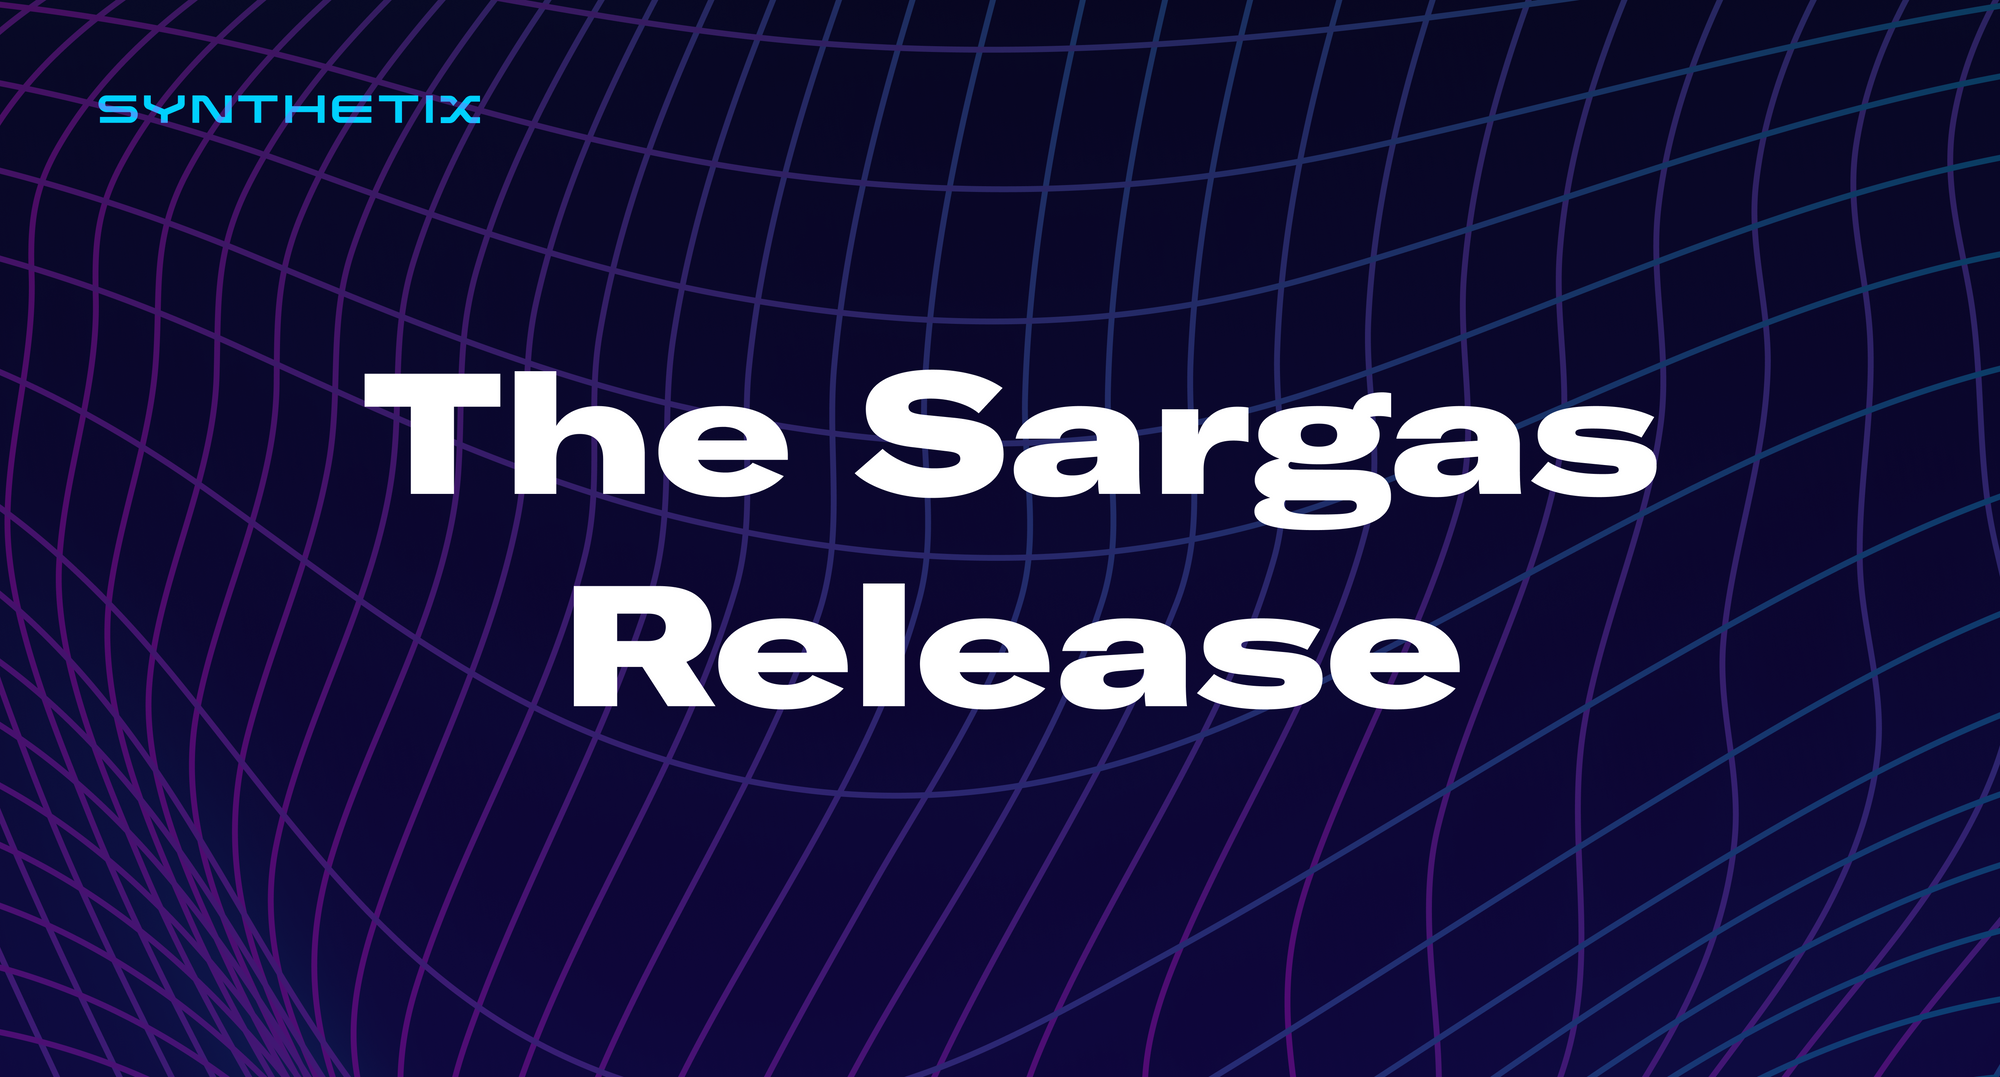 The Sargas Release